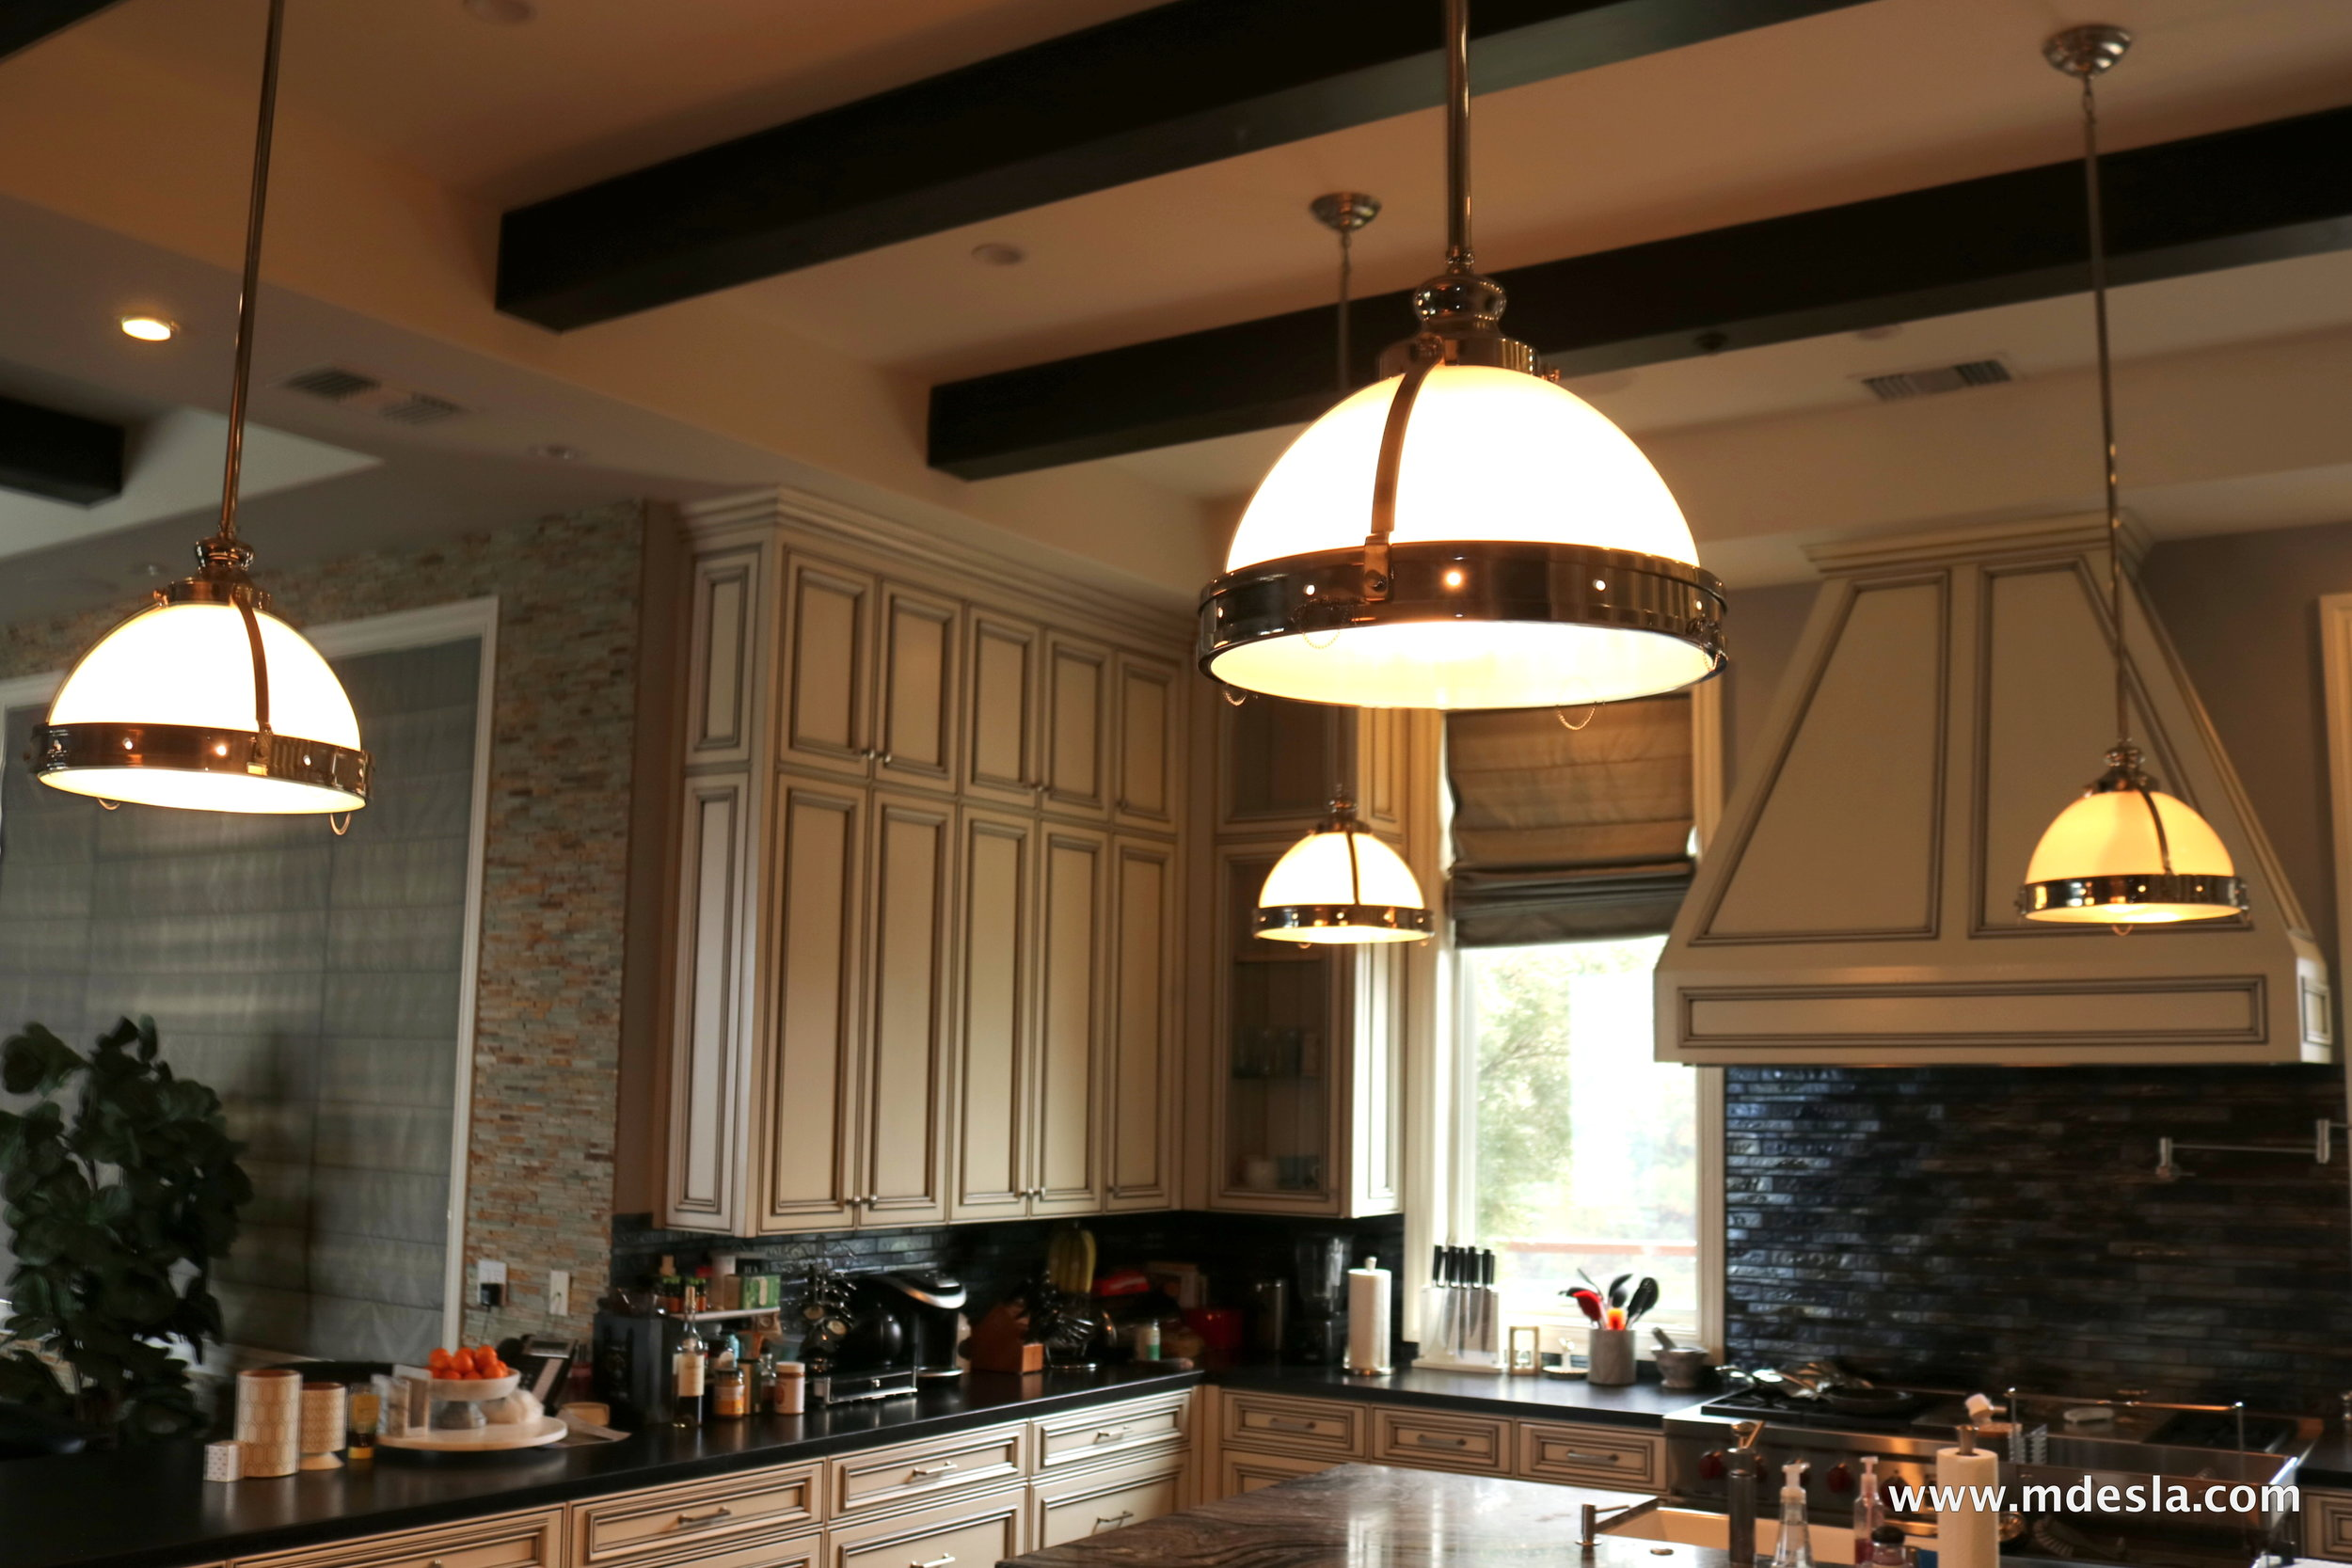 4 KITCHEN LIGHTS.JPG